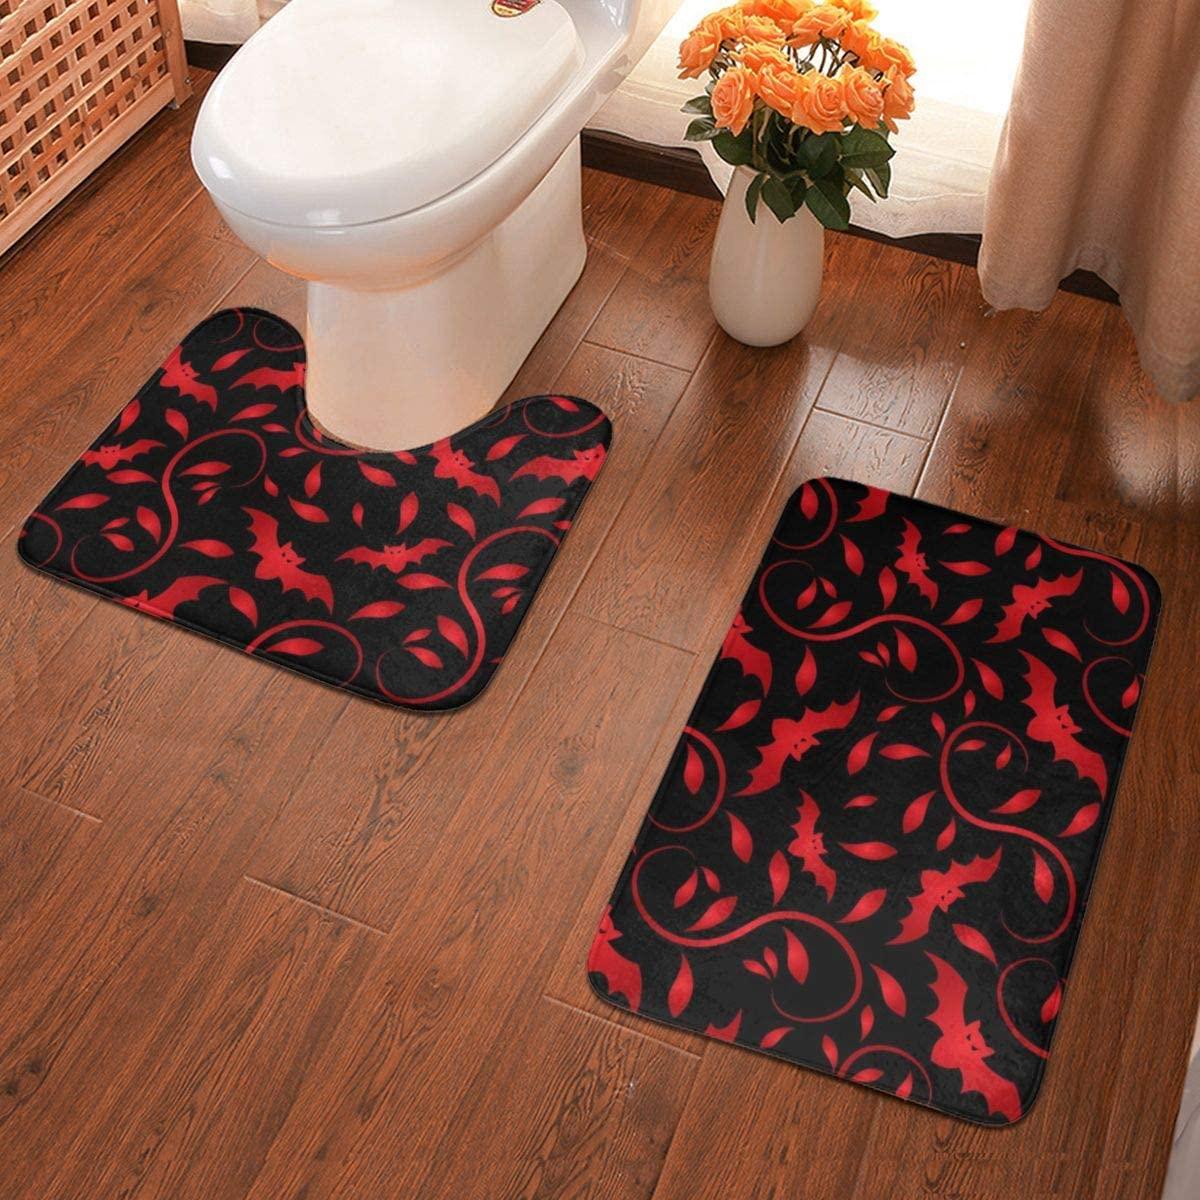 NiYoung Bathroom Rugs Slip-Resistant Extra Soft Highly Absorbent Floor Mats (Set of 2 Piece, Cool Blood Bet Red Paisley)